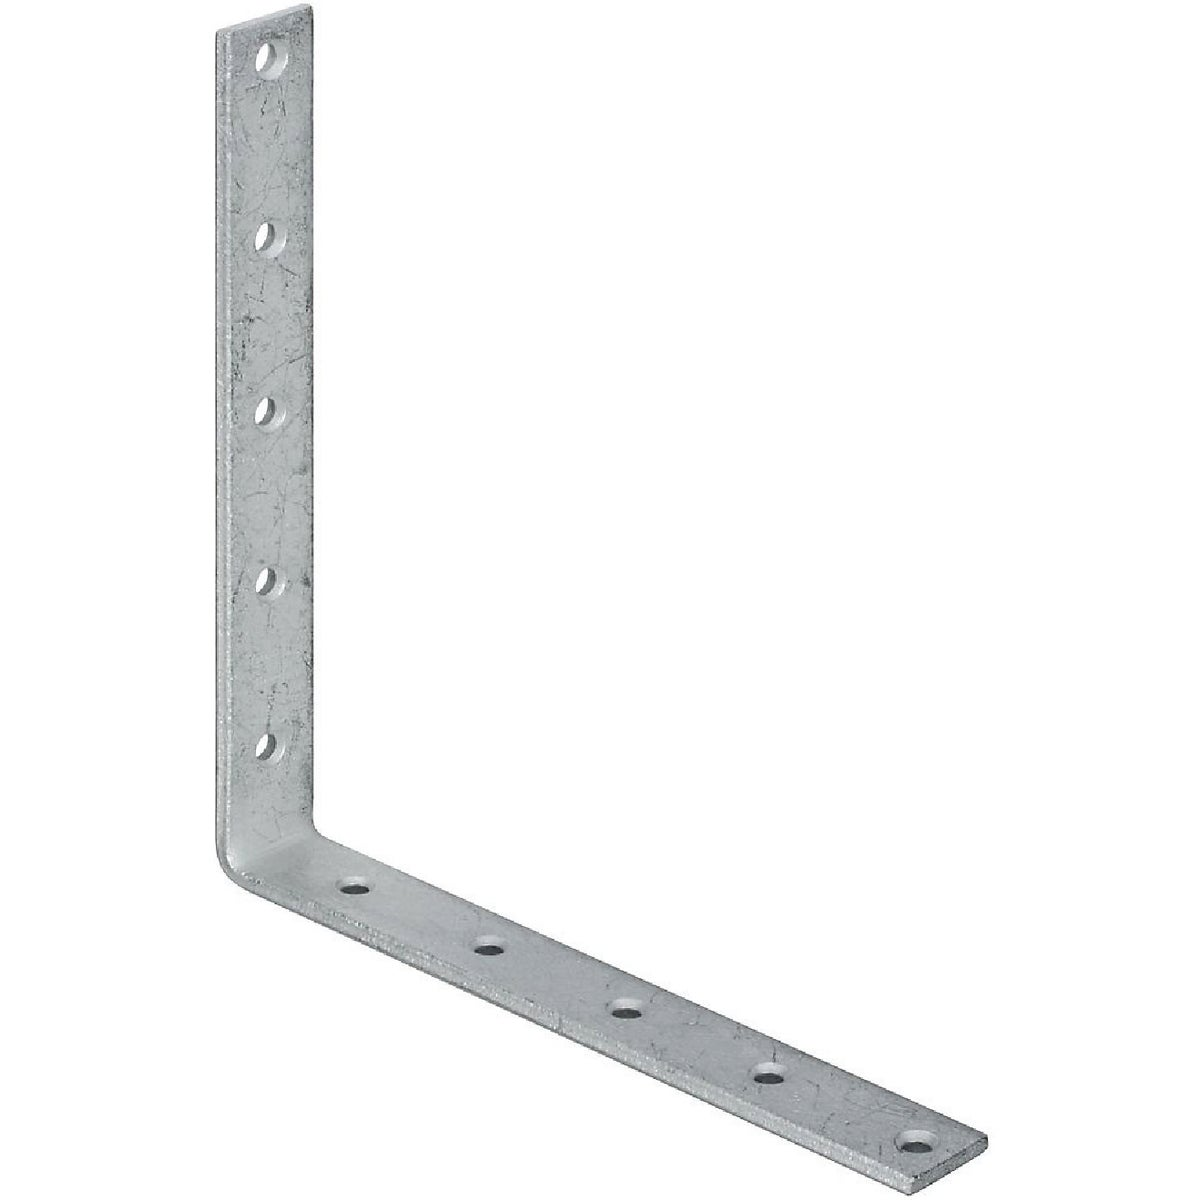 "10"" GALV CORNER BRACE - N220244 by National Mfg Co"